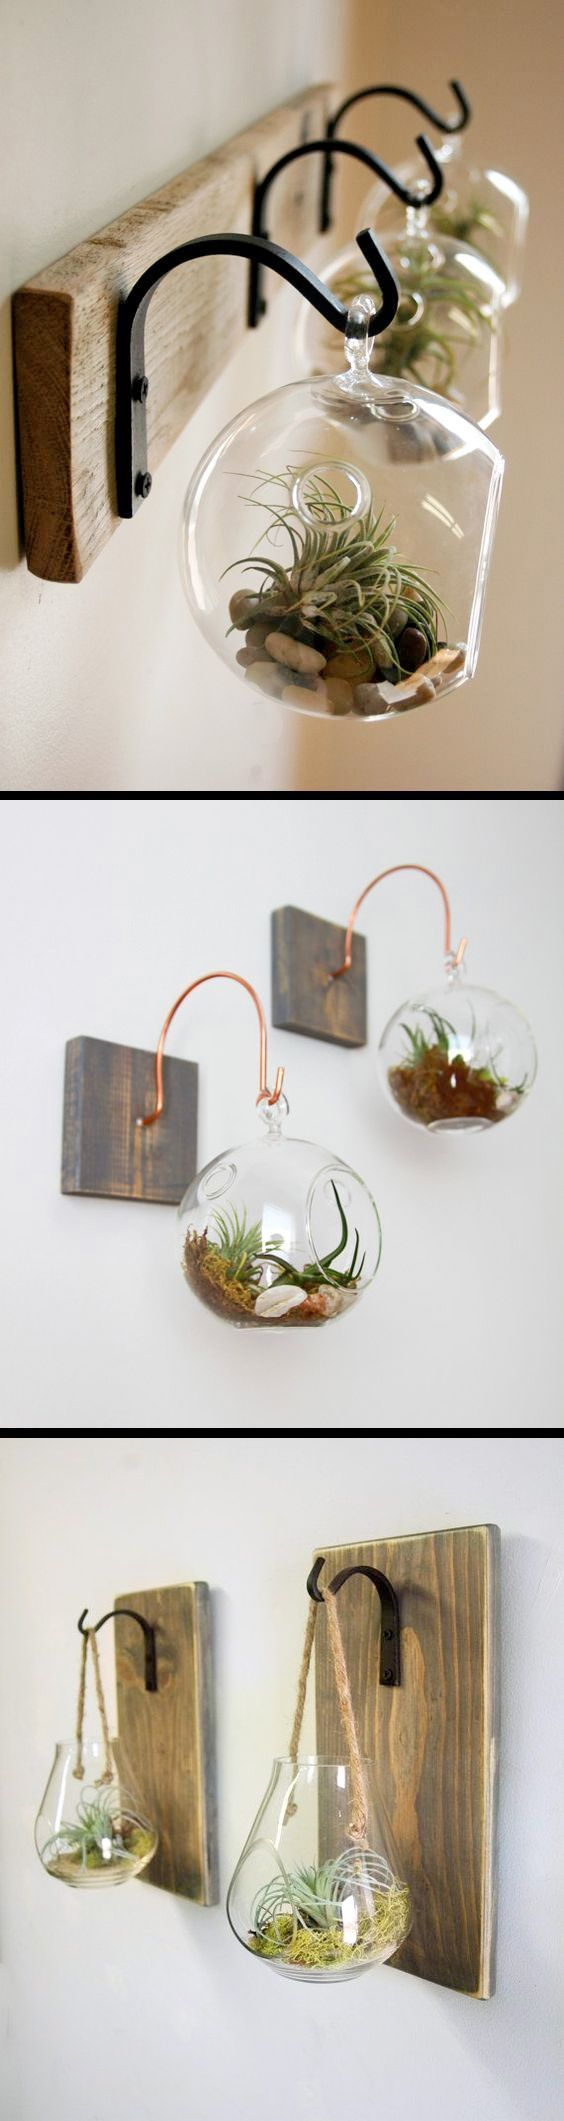 Hanging terrarium ideas for air plants and succulents. A simple yet elegant home decor item to spruce up your living spaces